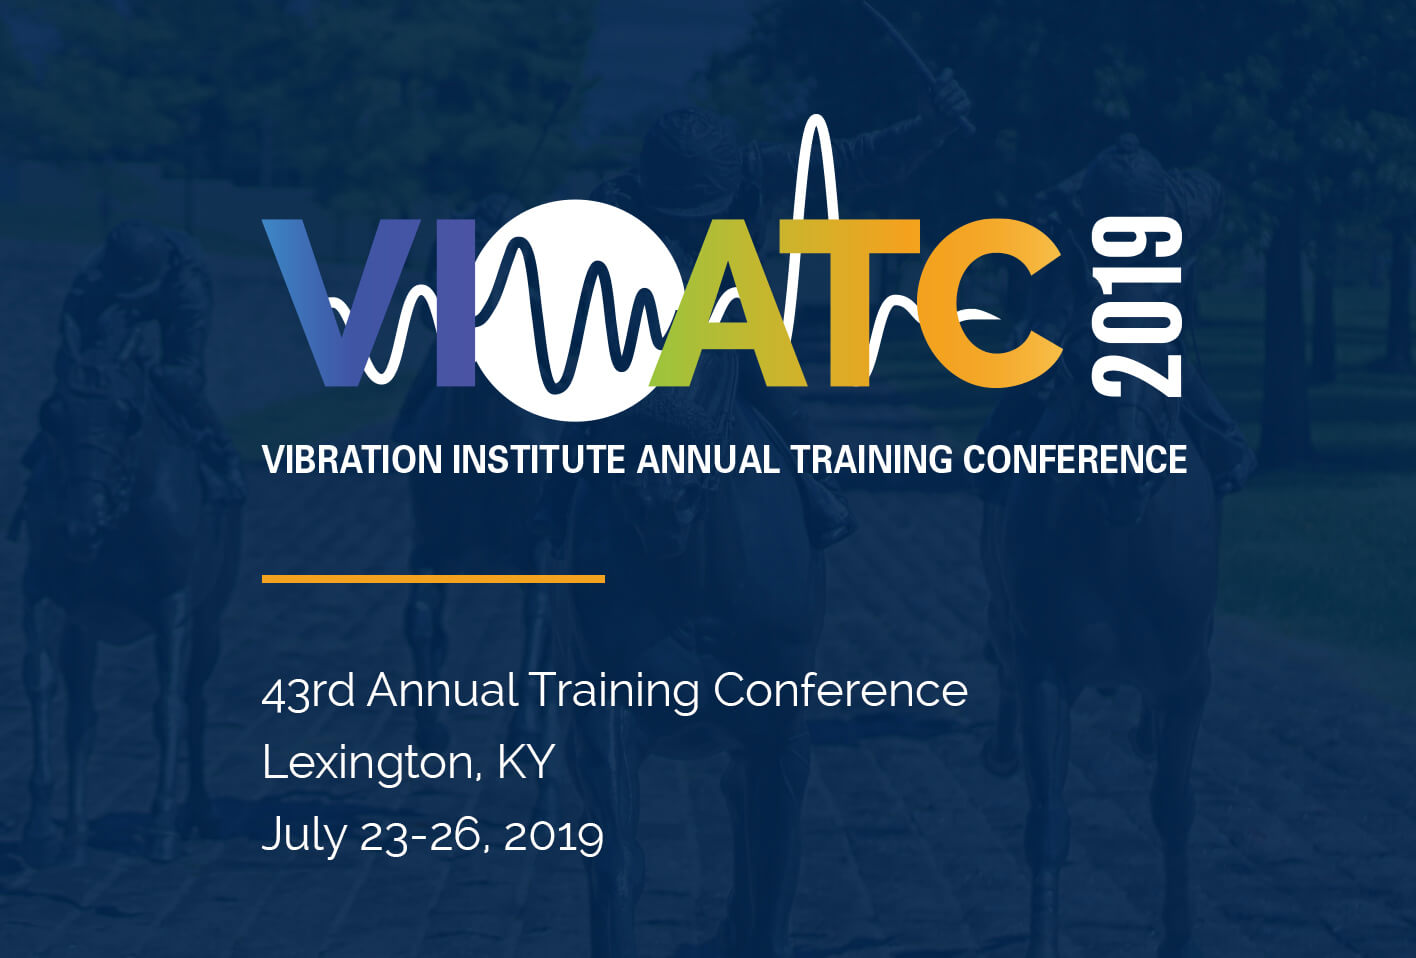 Vibration institute certified individuals